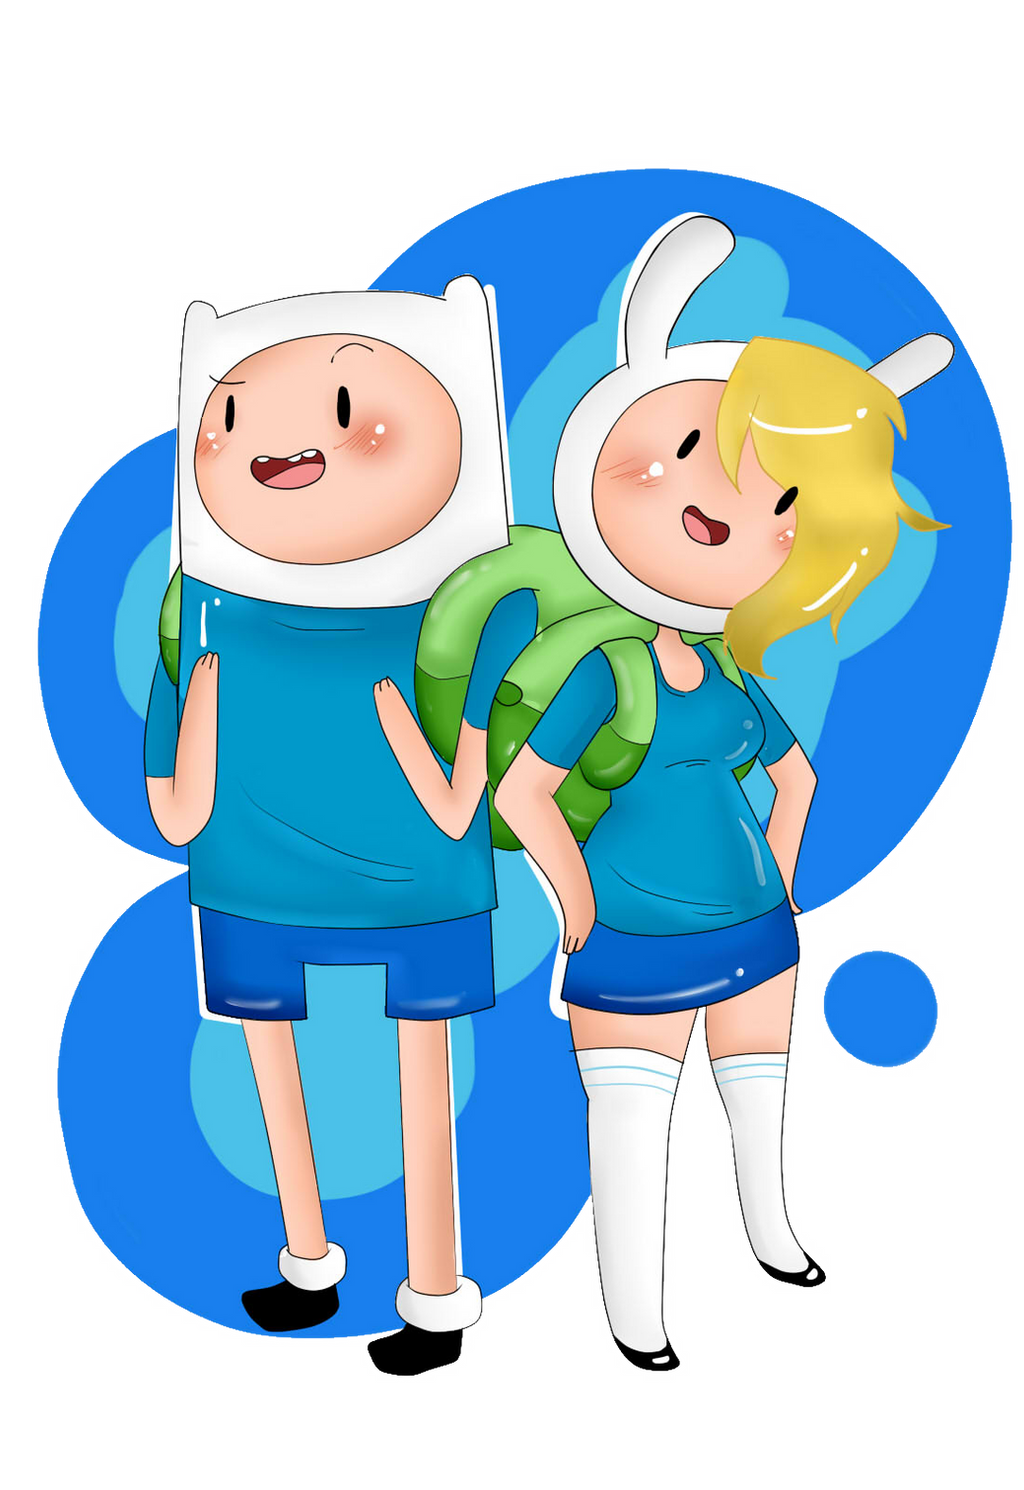 Finn and Fionna by Zllm